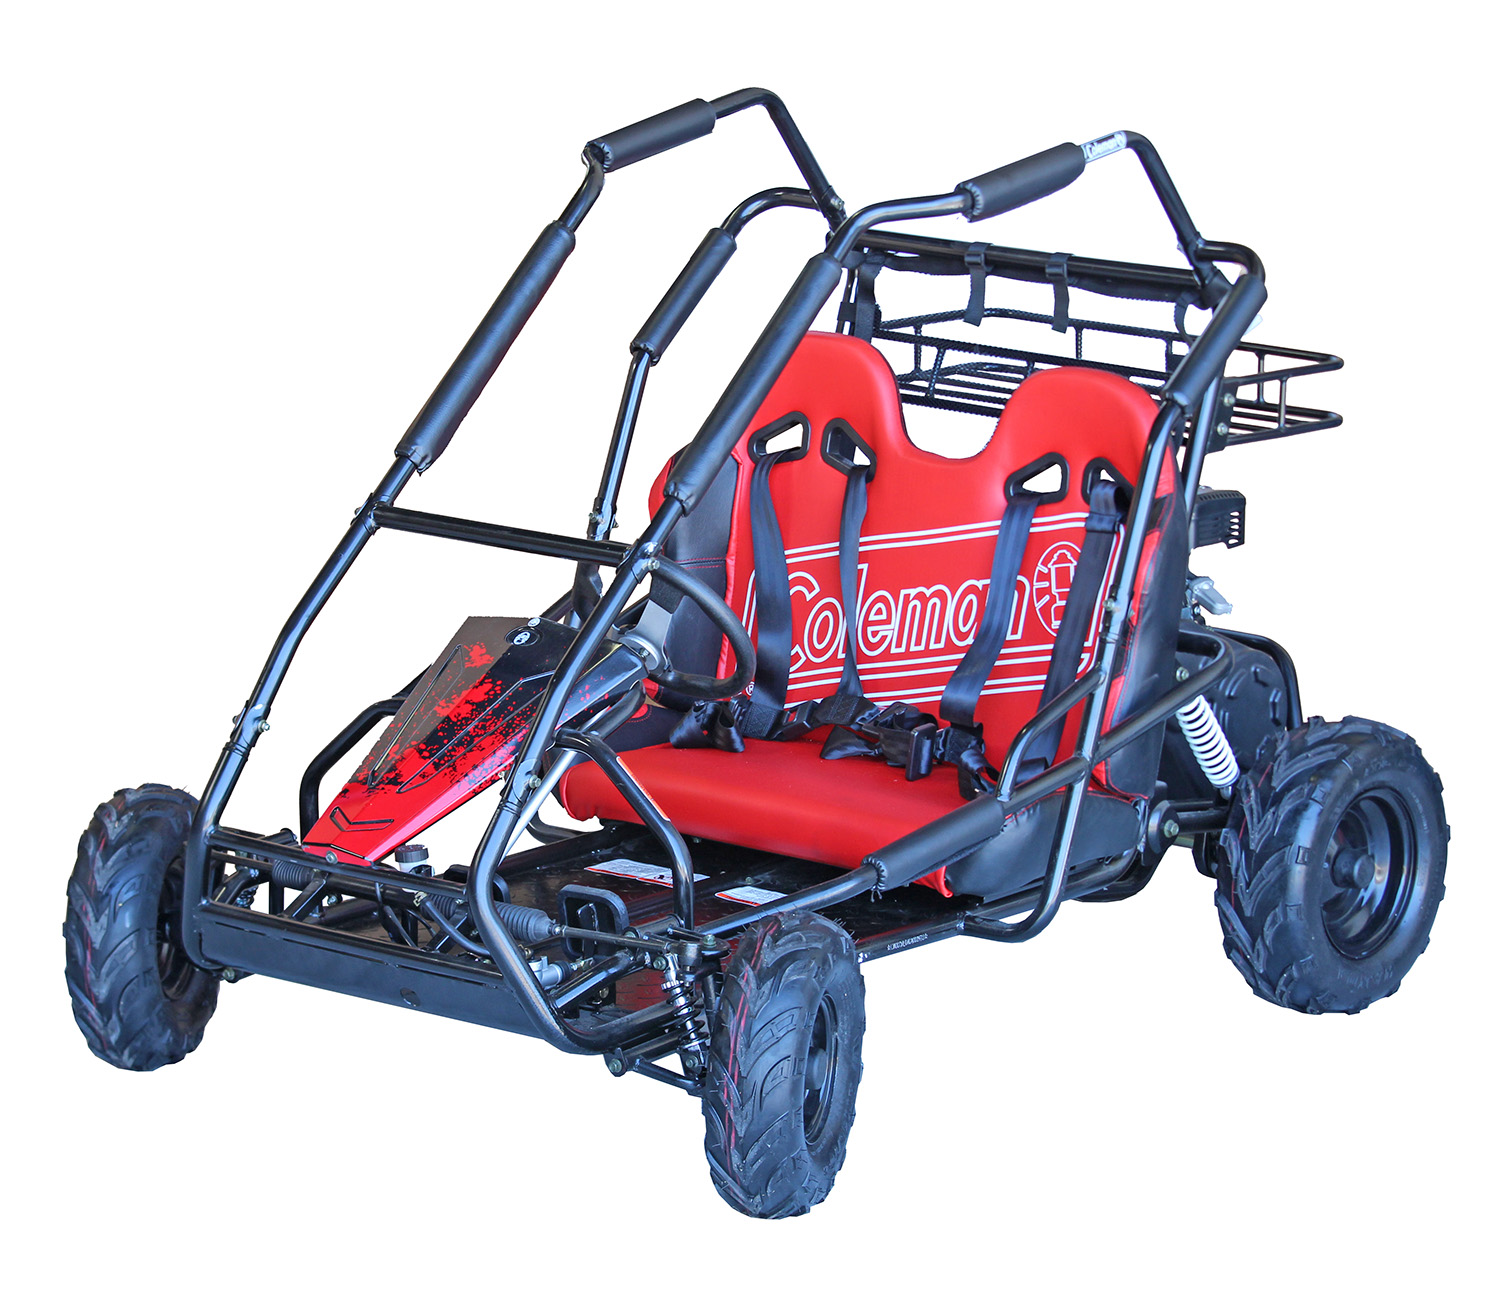 The classic Coleman Powersports Go-Kart. Build to last and measured in smiles and exclamations of joy!